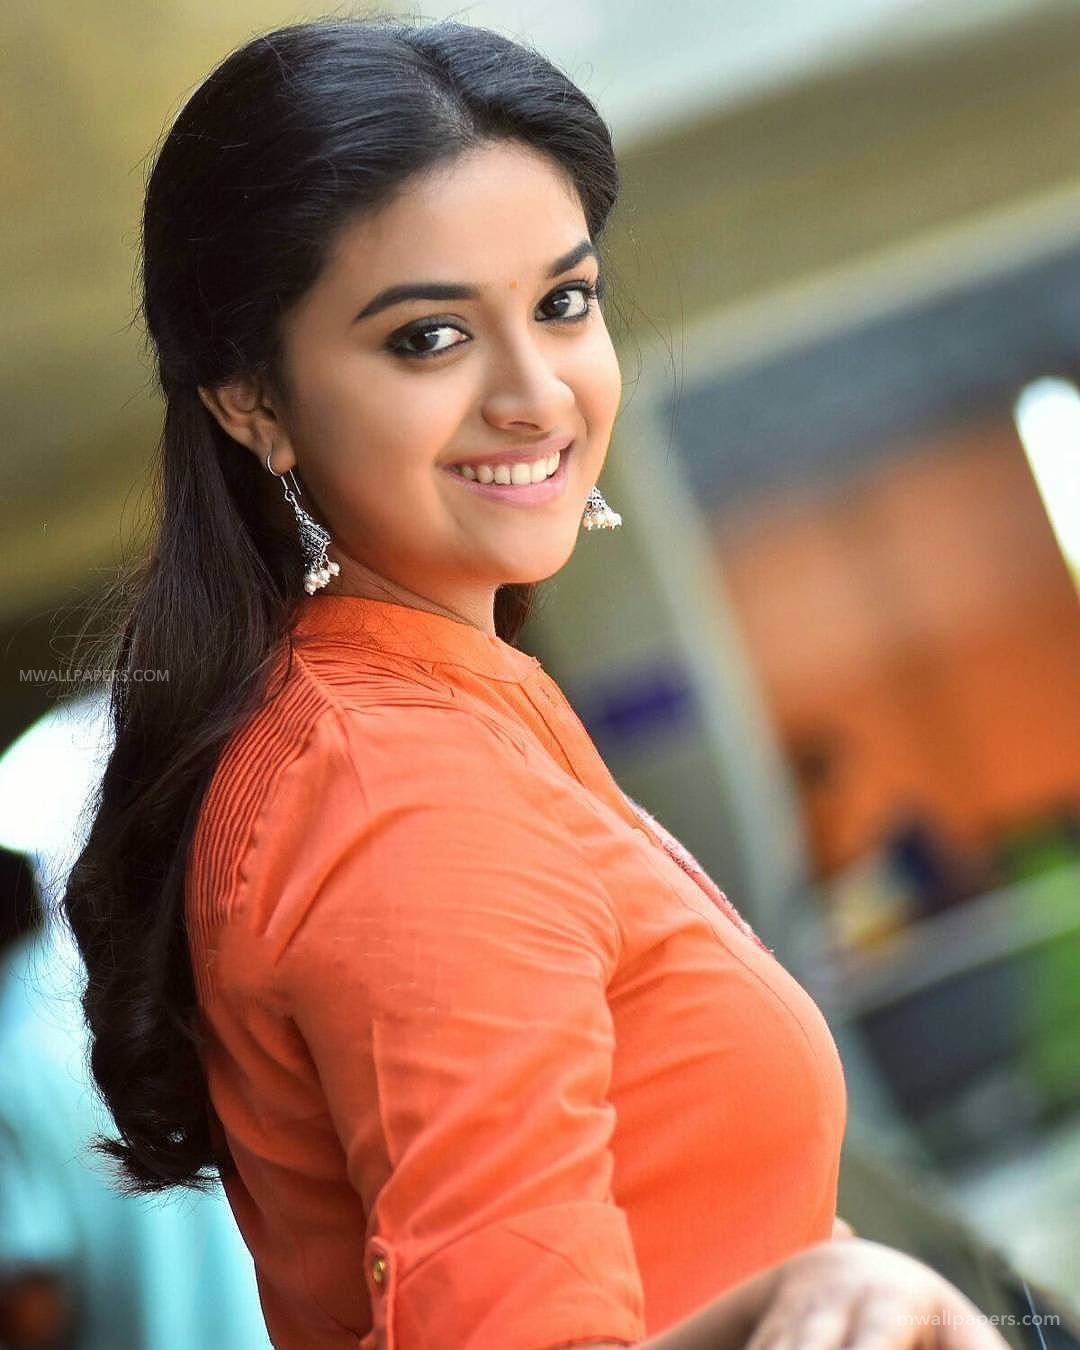 Keerthy Suresh HD Wallpapers (Desktop Background / Android / iPhone) (1080p, 4k) (58139) - Keerthy Suresh